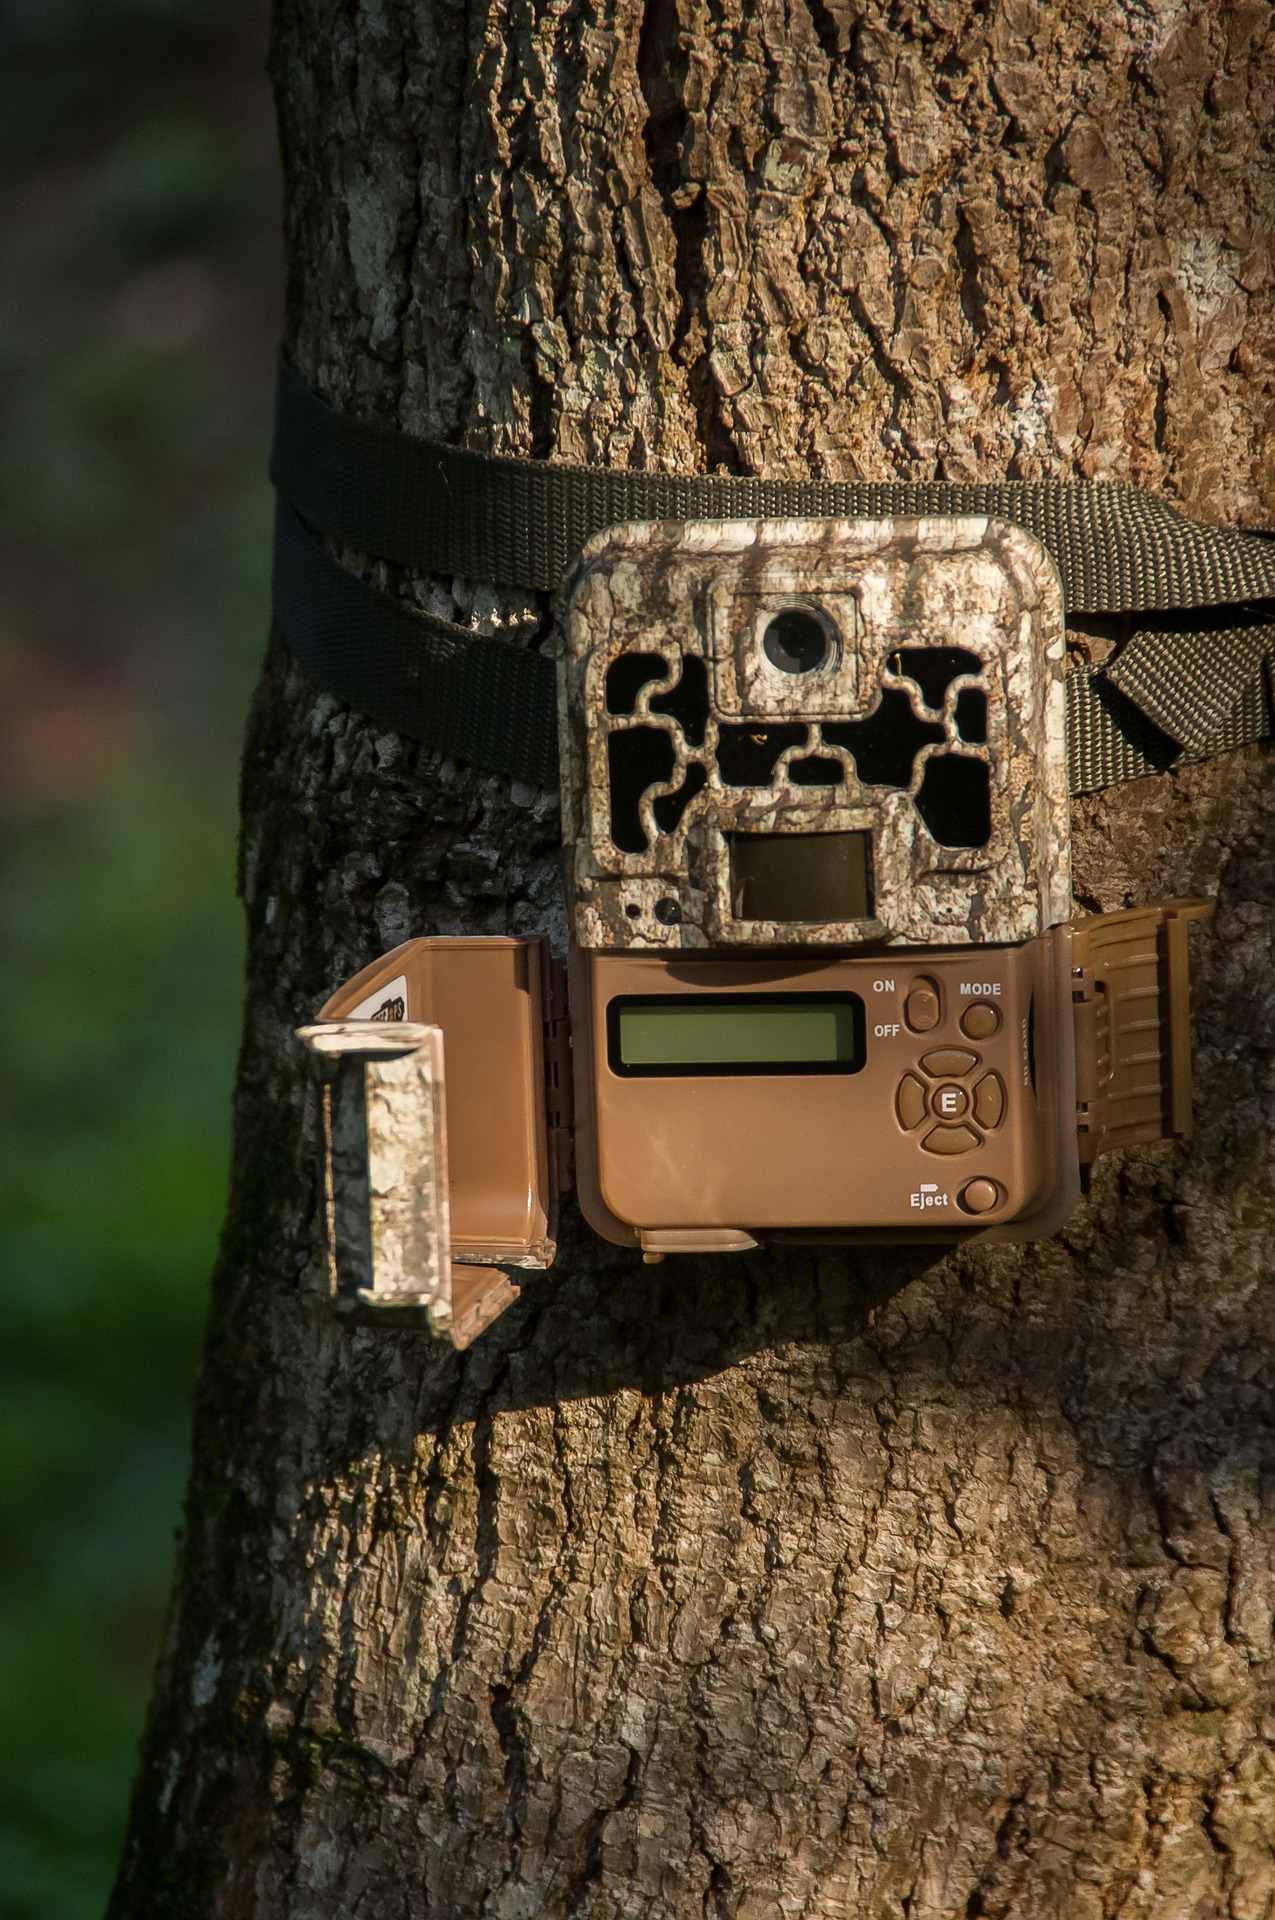 wildlife trail camera wrapped around a tree